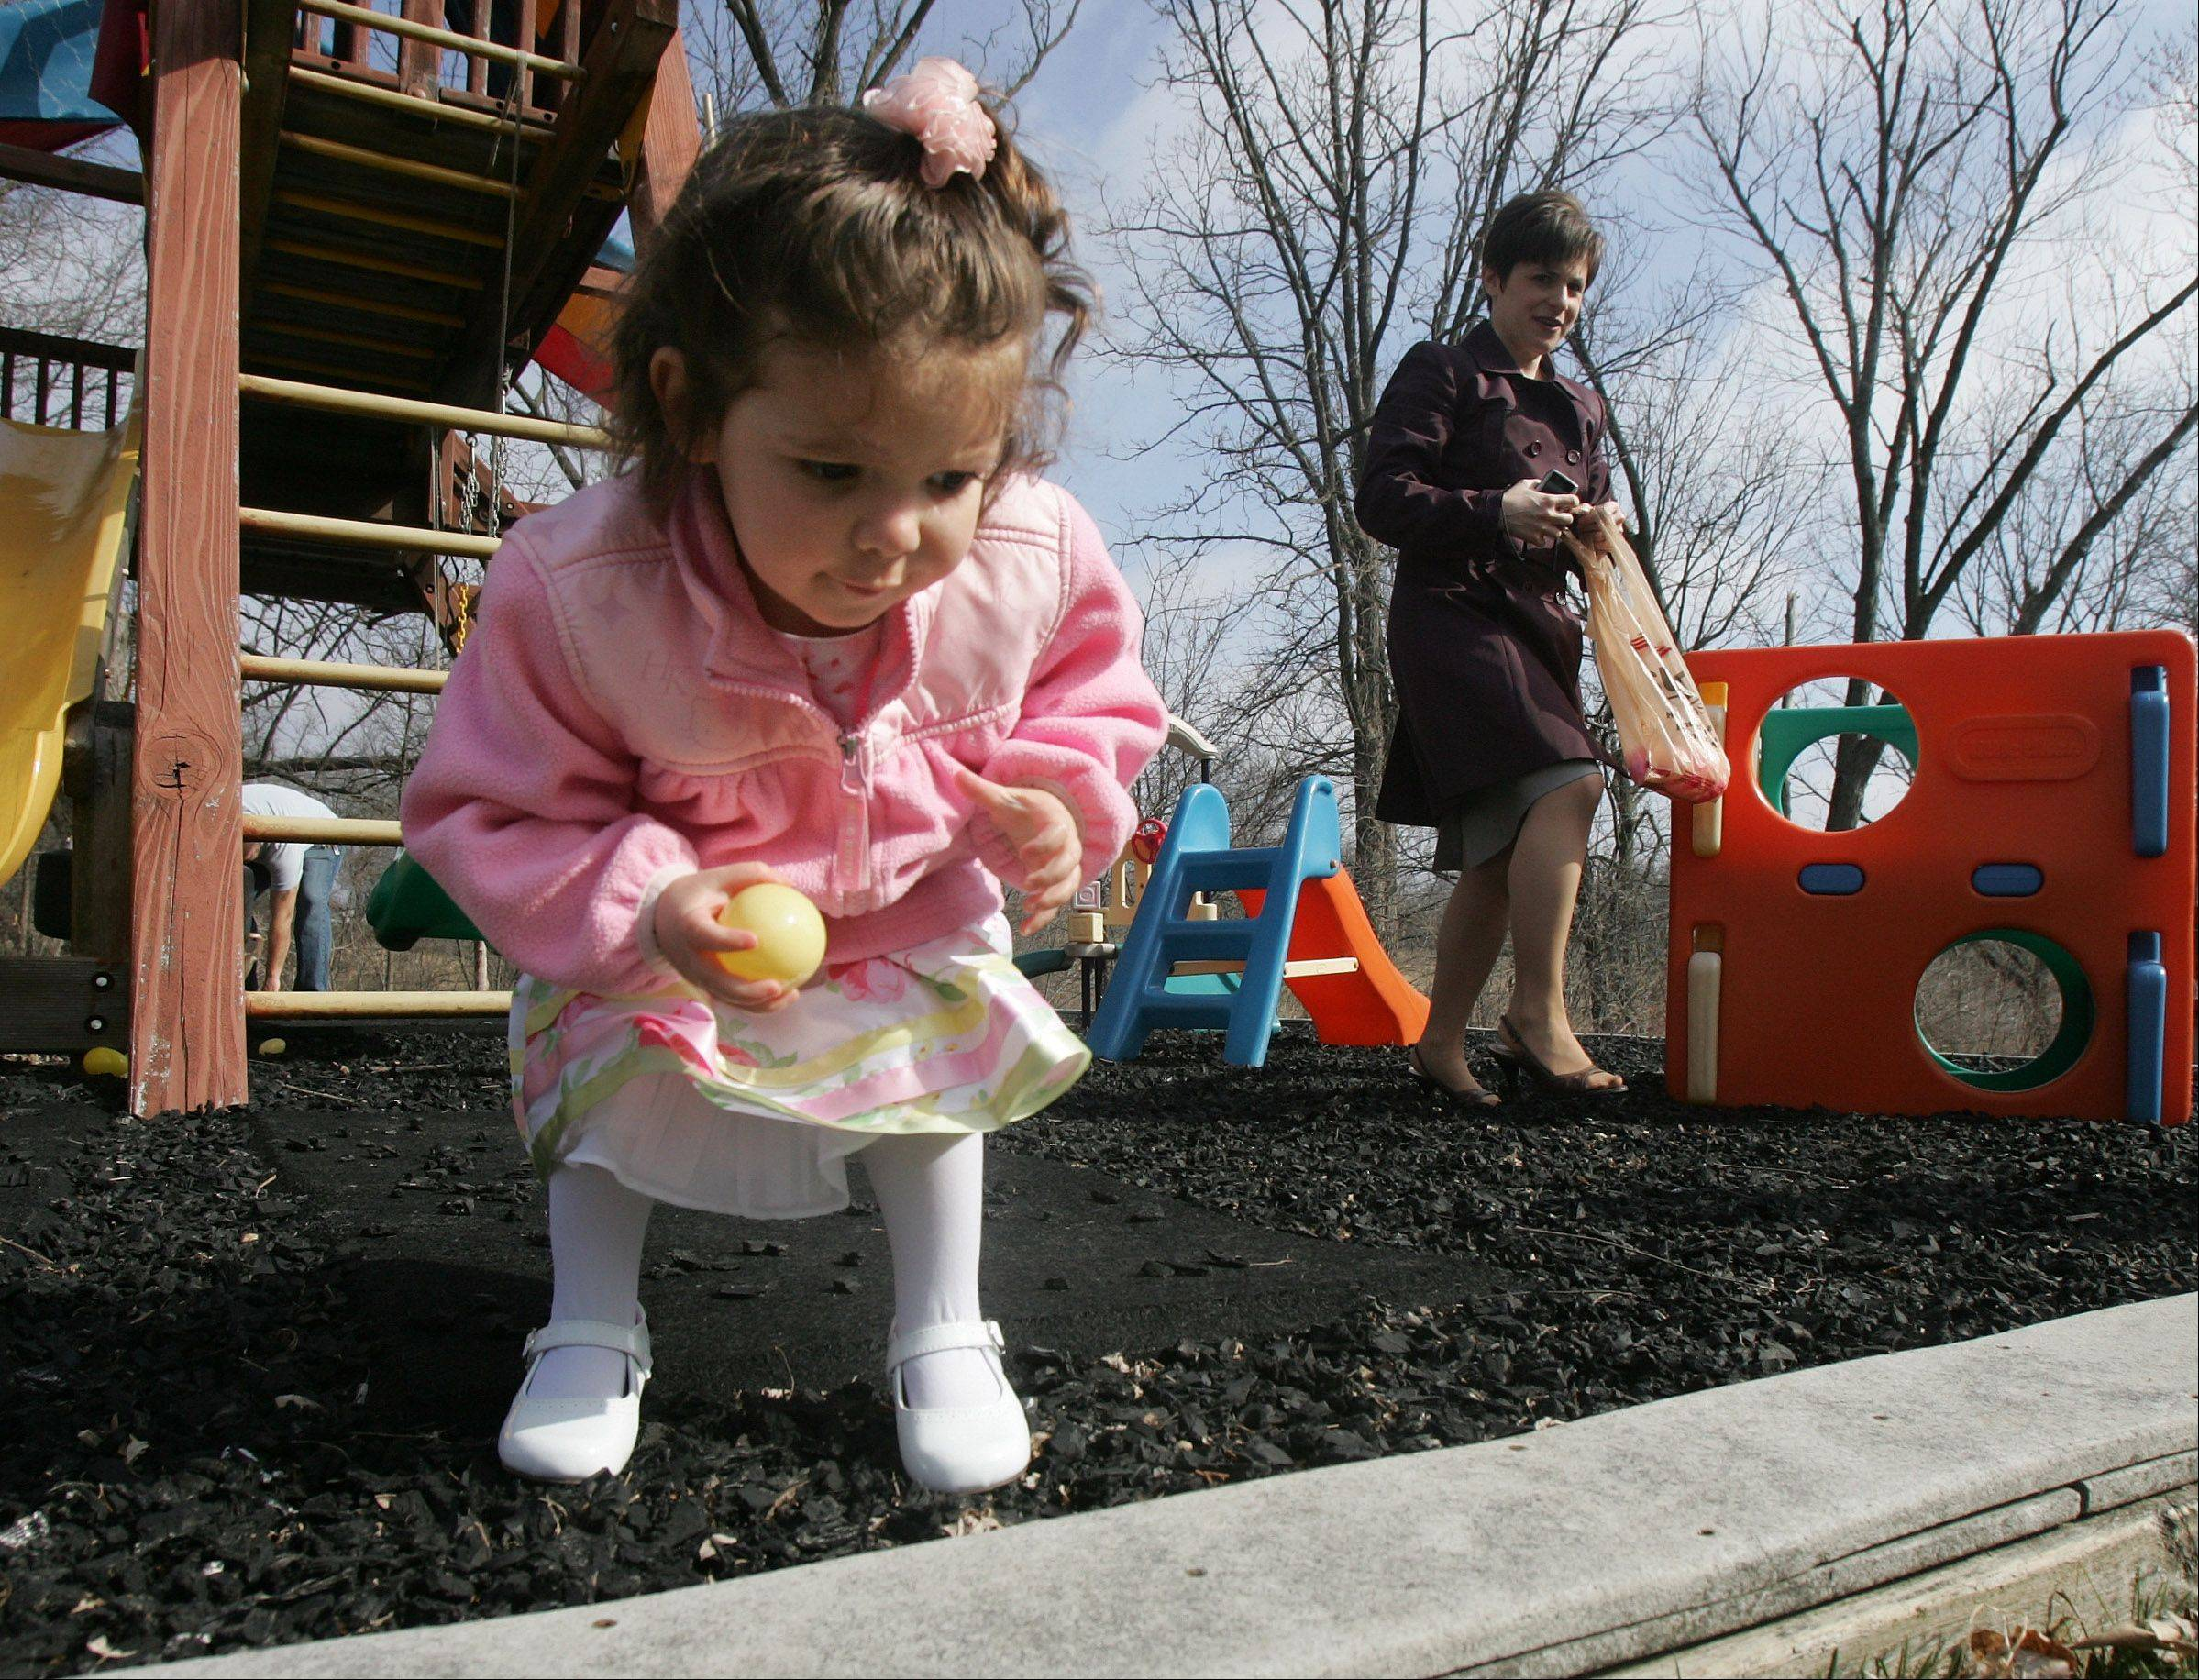 Two-year-old Corinne Drucker, of Hawthorn Woods, collects eggs as her mother, Jeanene, watches during the Easter egg hunt at Long Grove Community Church on Easter Sunday. Children collected eggs in different age categories looking for golden eggs and prizes.